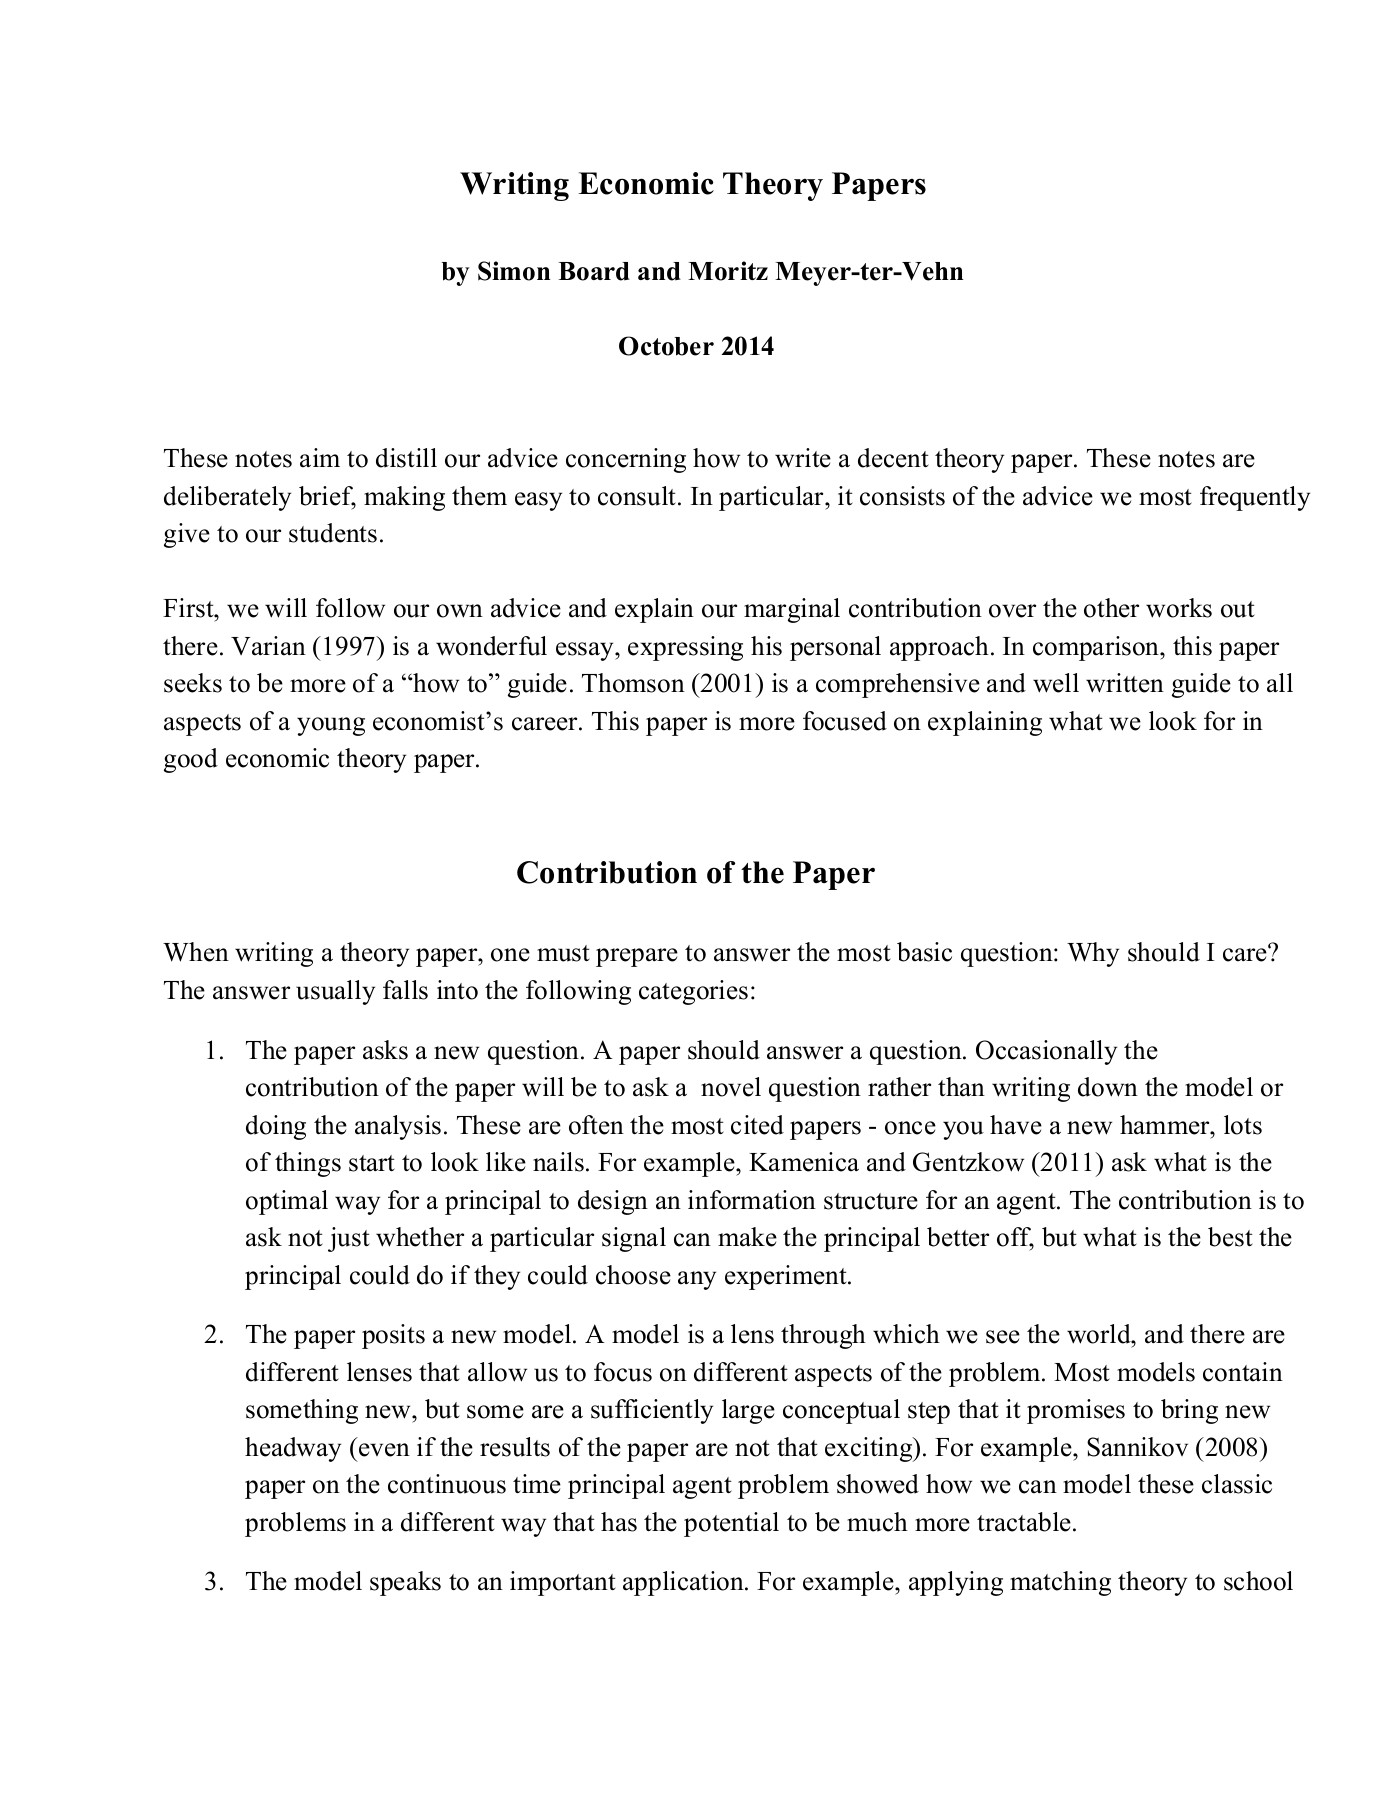 Writing a theory paper argumentative essay topics for 5th grade